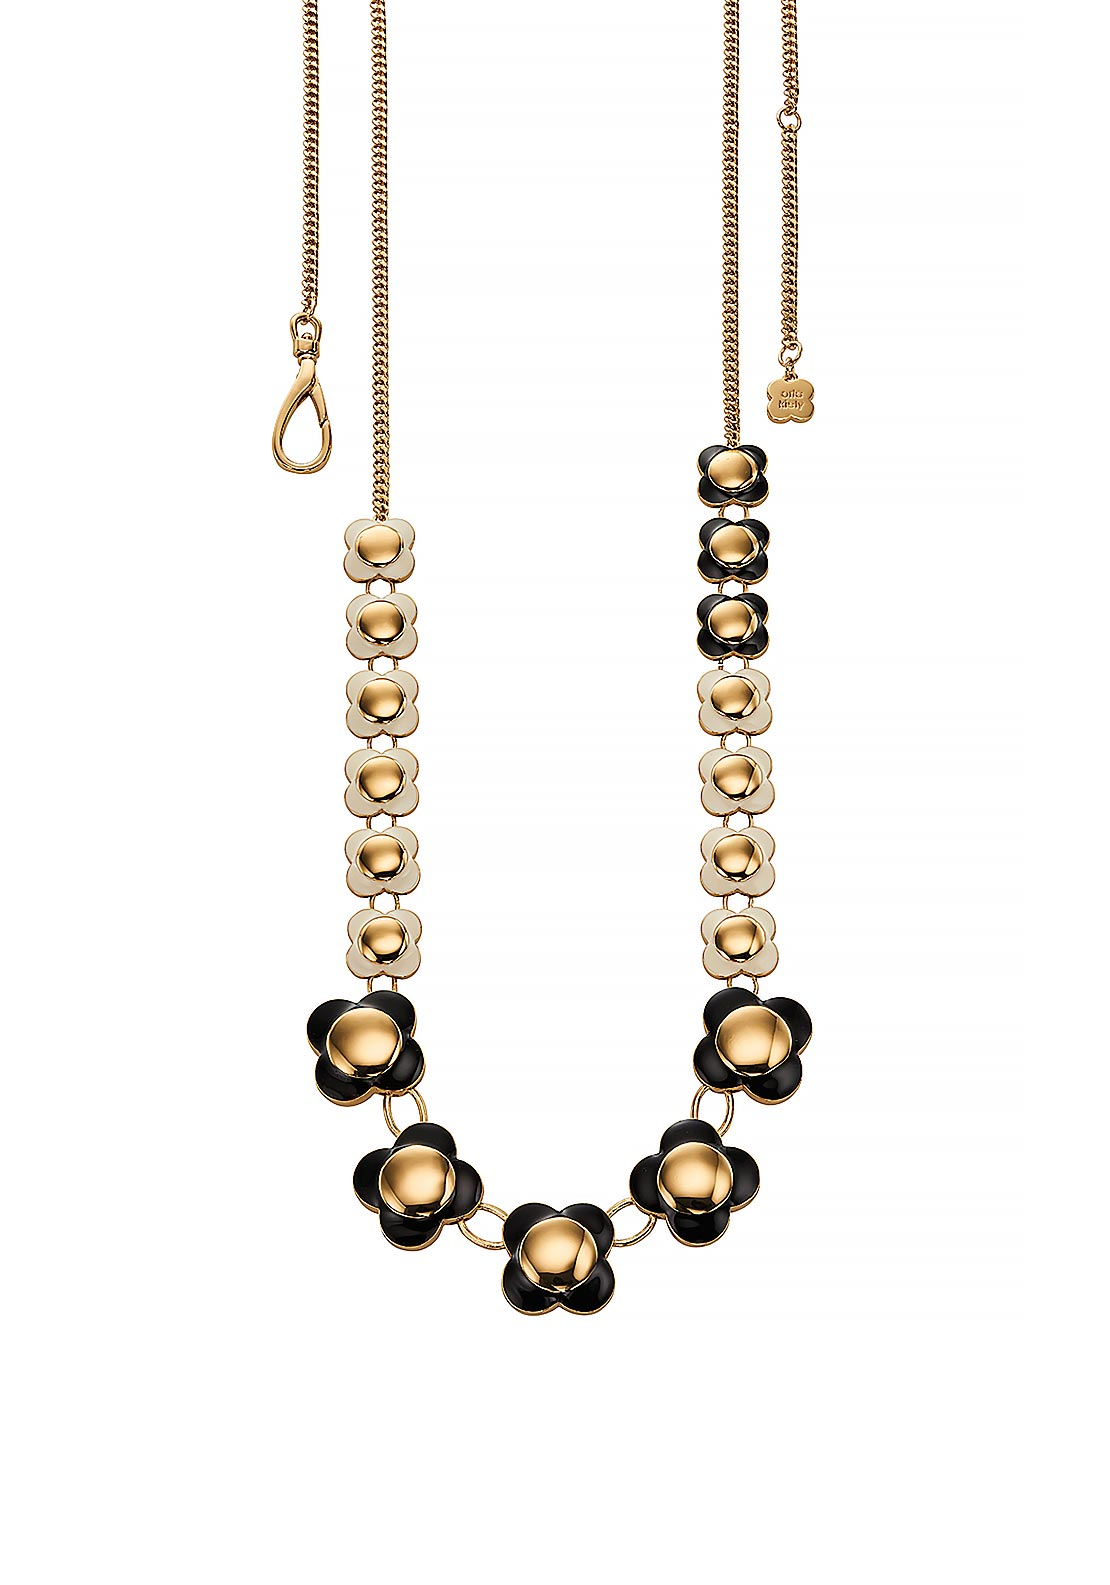 Orla Kiely Daisy Chain Long Flower Necklace, Black White & Gold